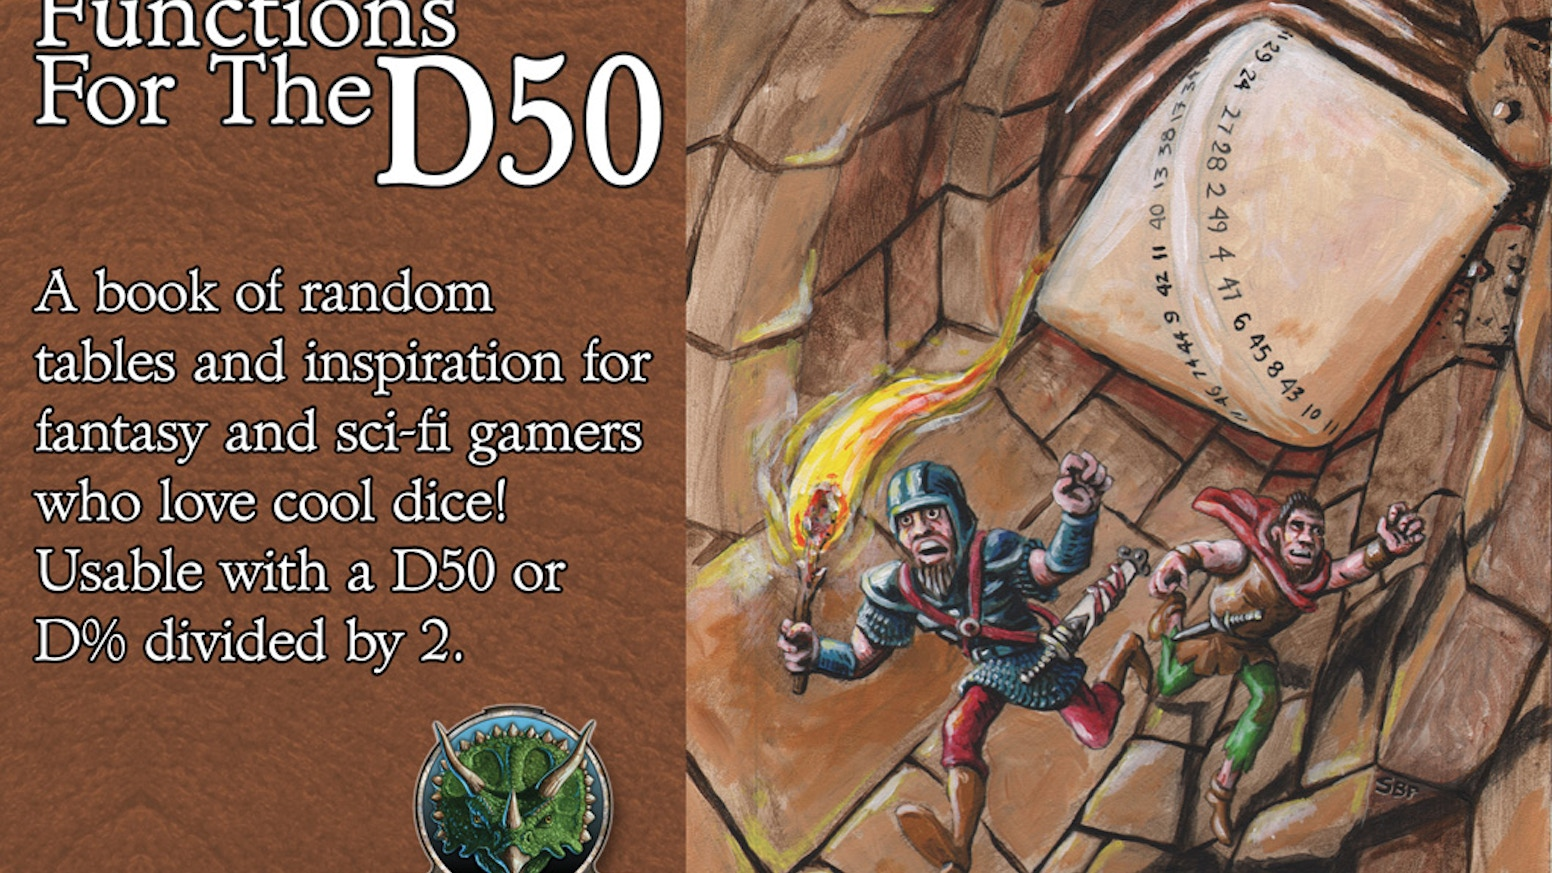 Fifty Fantastic Functions for the D50 by Goodman Games — Kickstarter